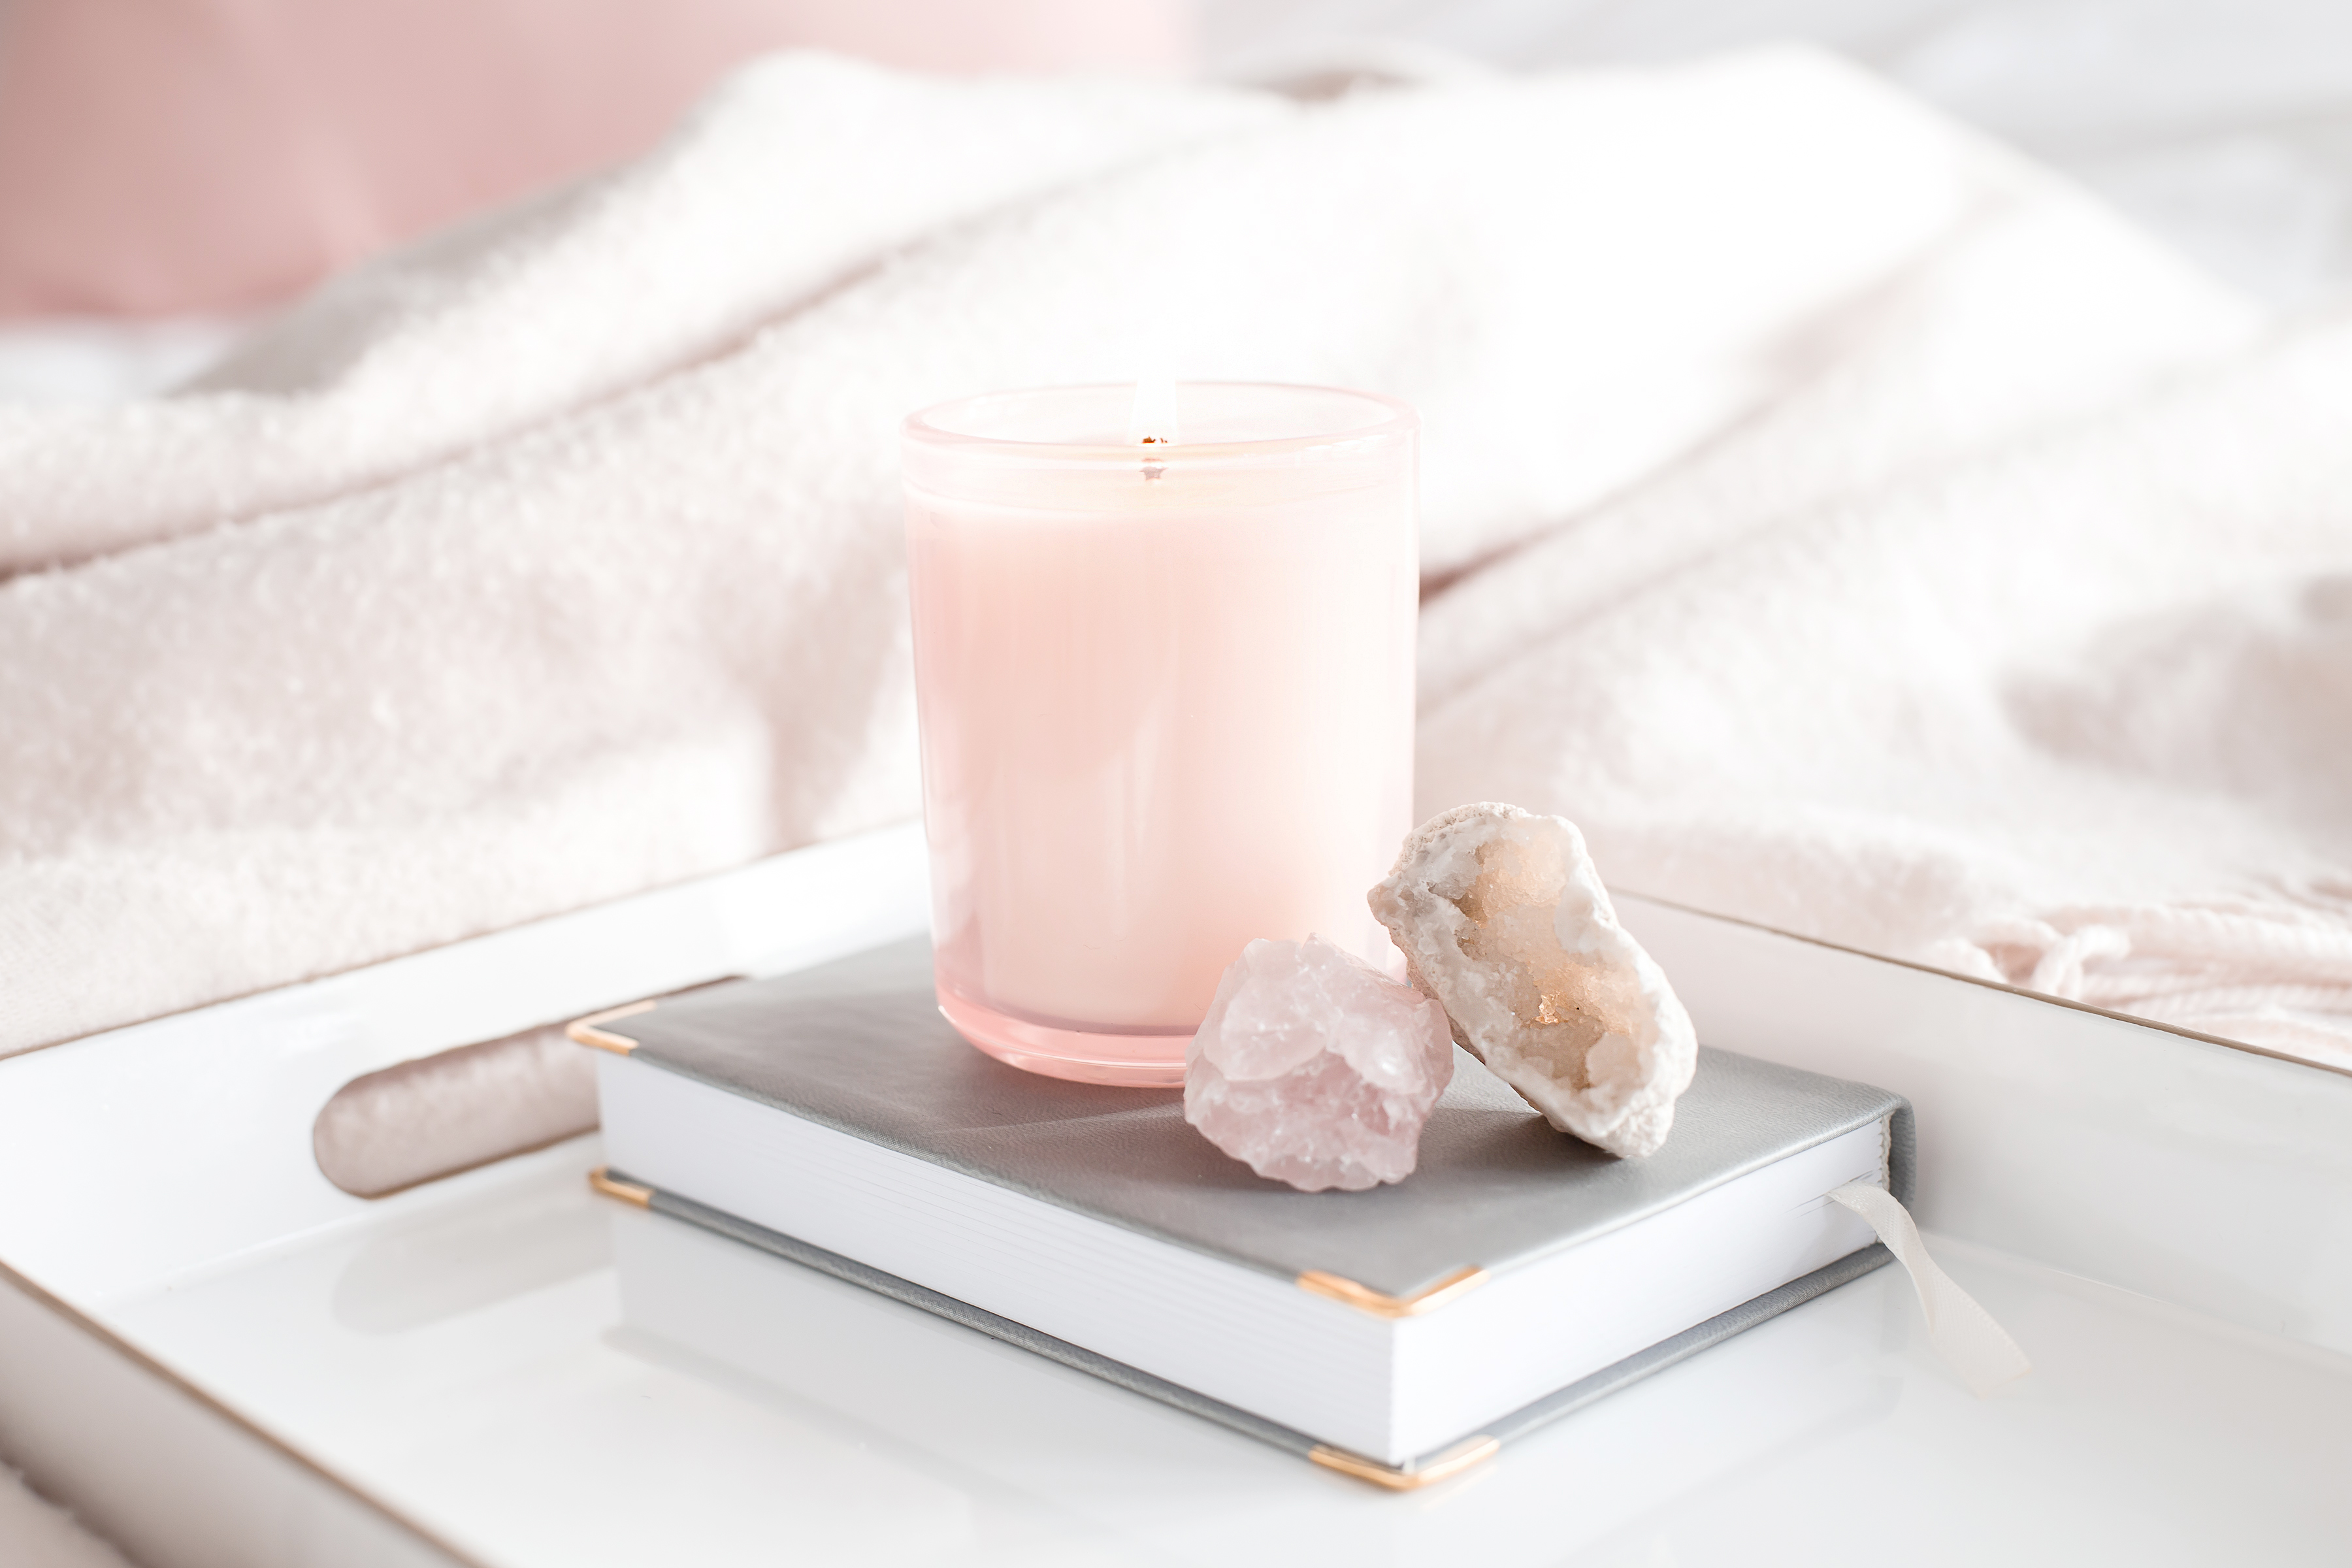 A list of the best #selfcare products to get. These are must have #ideas for women practice a lil' self care and #selflove right at home! Especially for the busy #momboss or #bossbabe. These simple things can help you transform your #home and #mentalhealth. #mindset #healthy #healthylifestyle